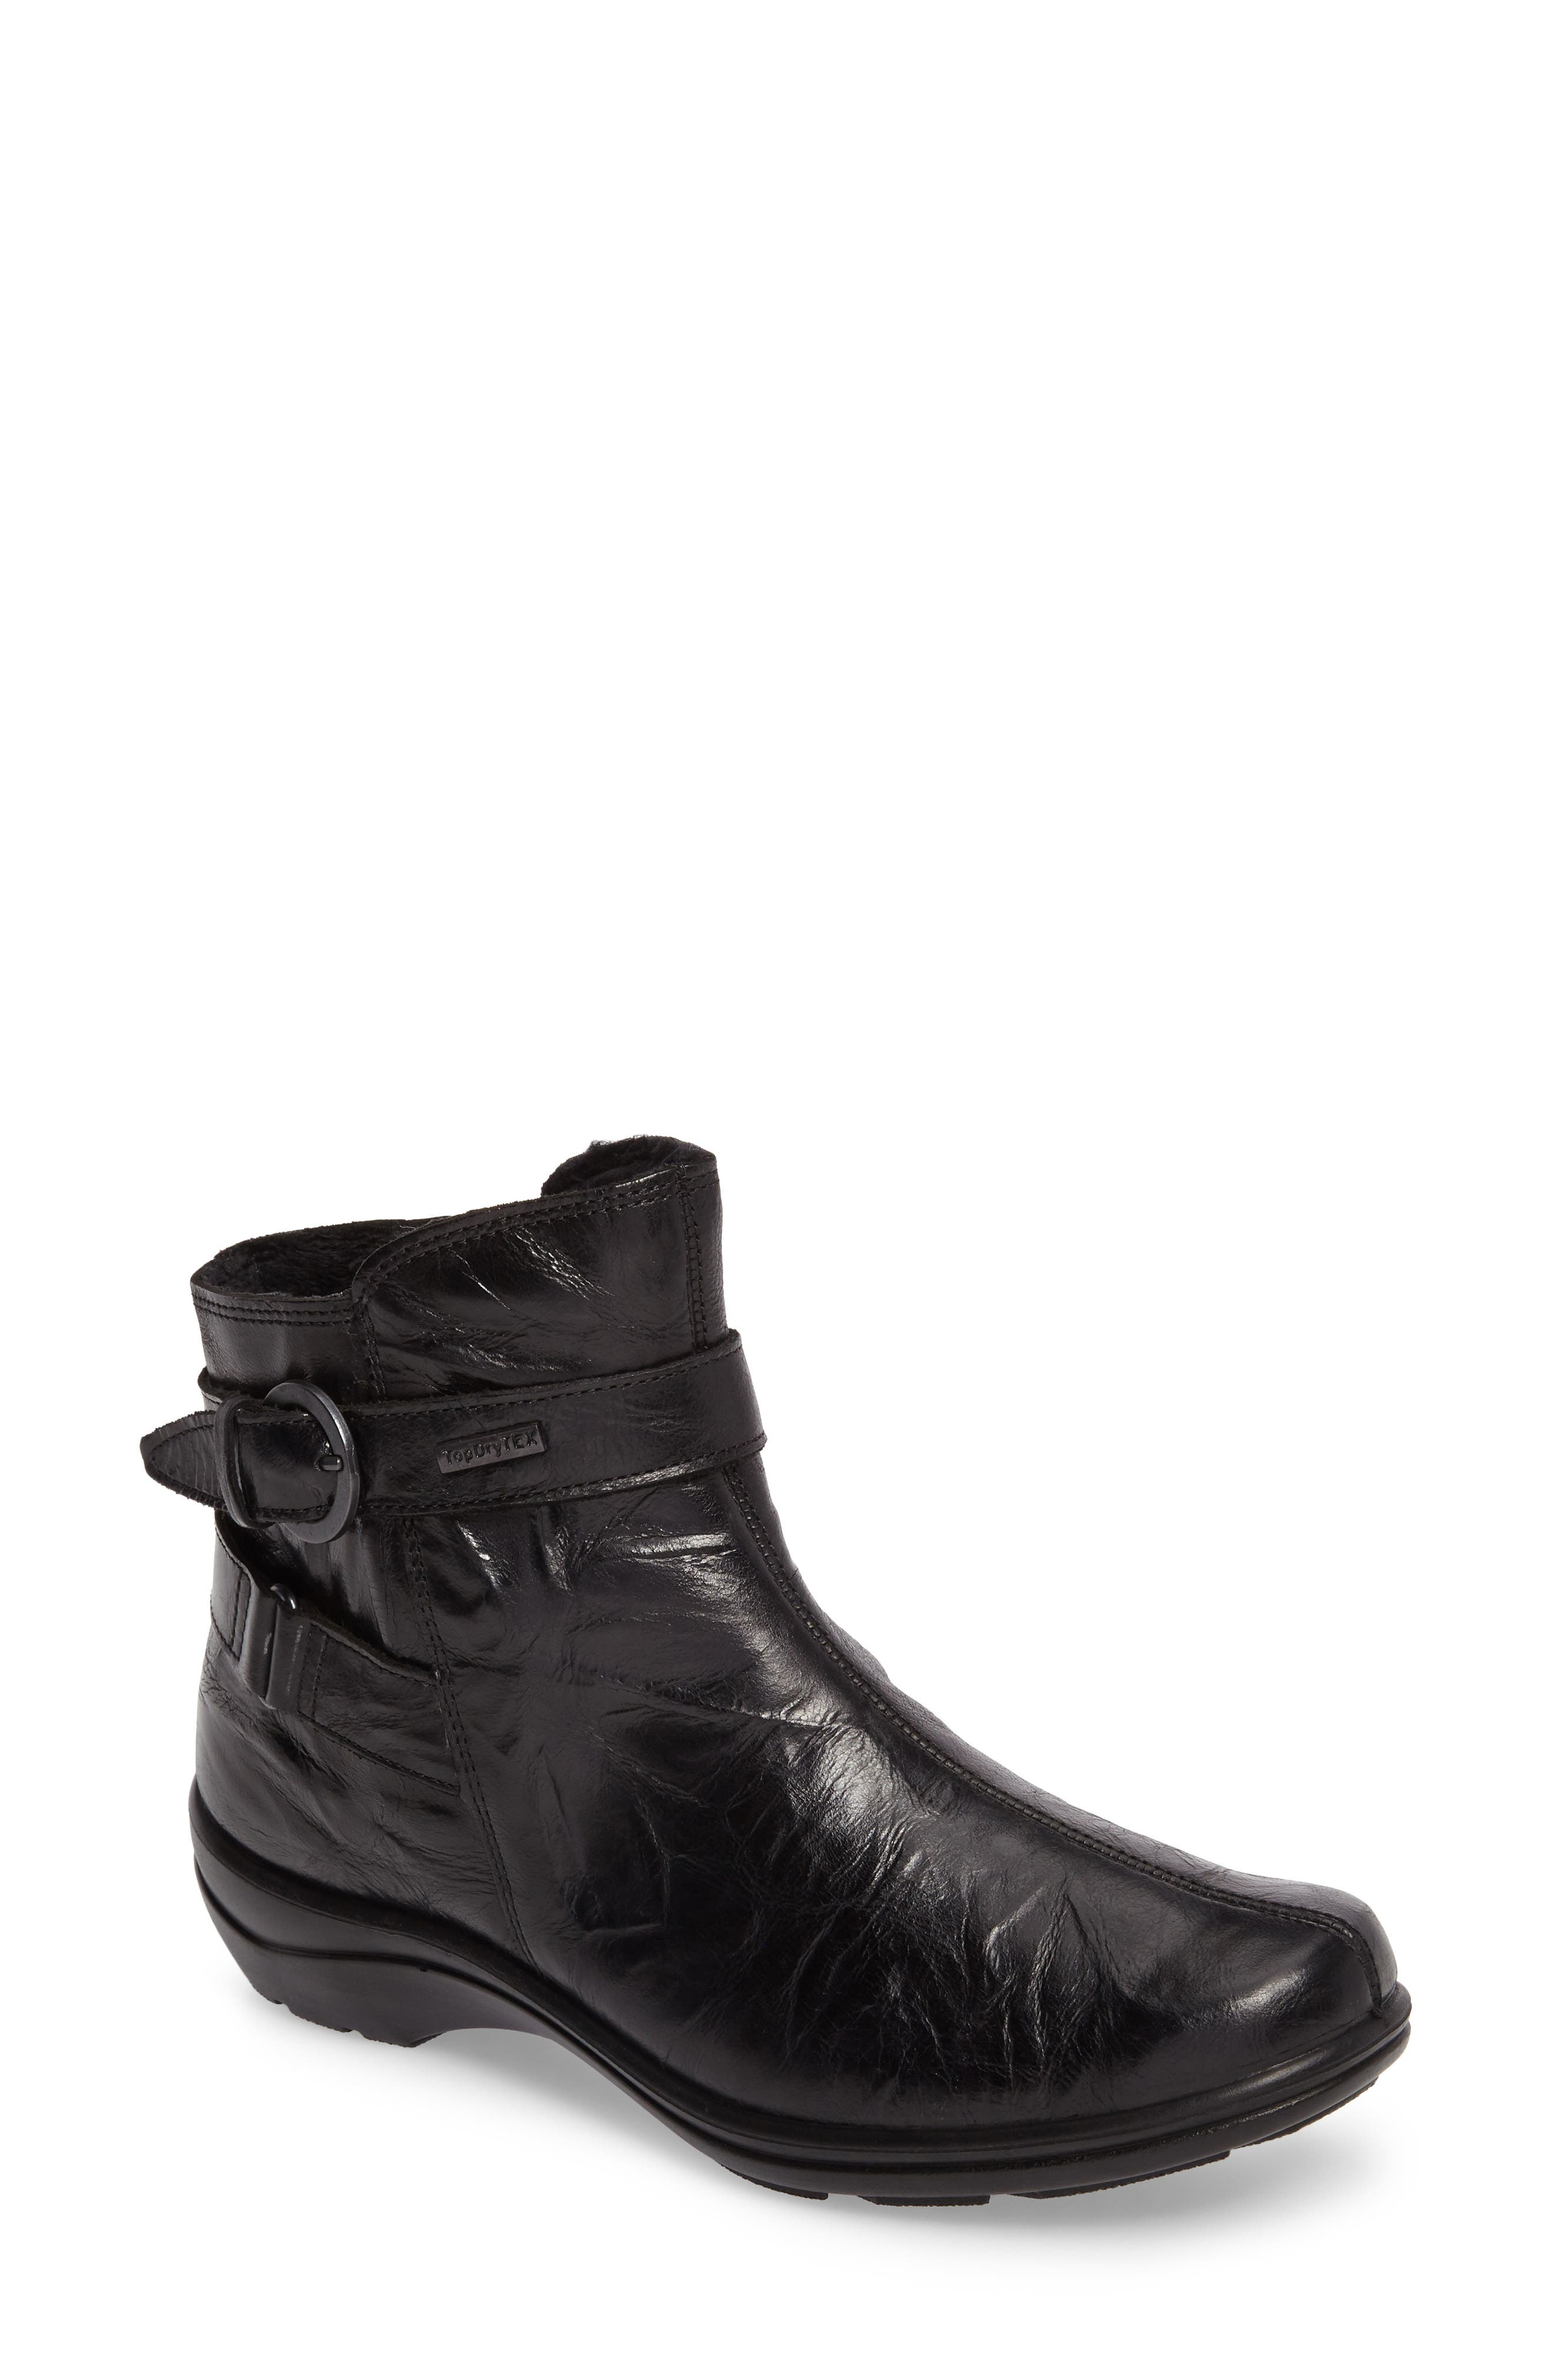 Alternate Image 1 Selected - Romika® Cassie 36 Water Resistant Bootie (Women)